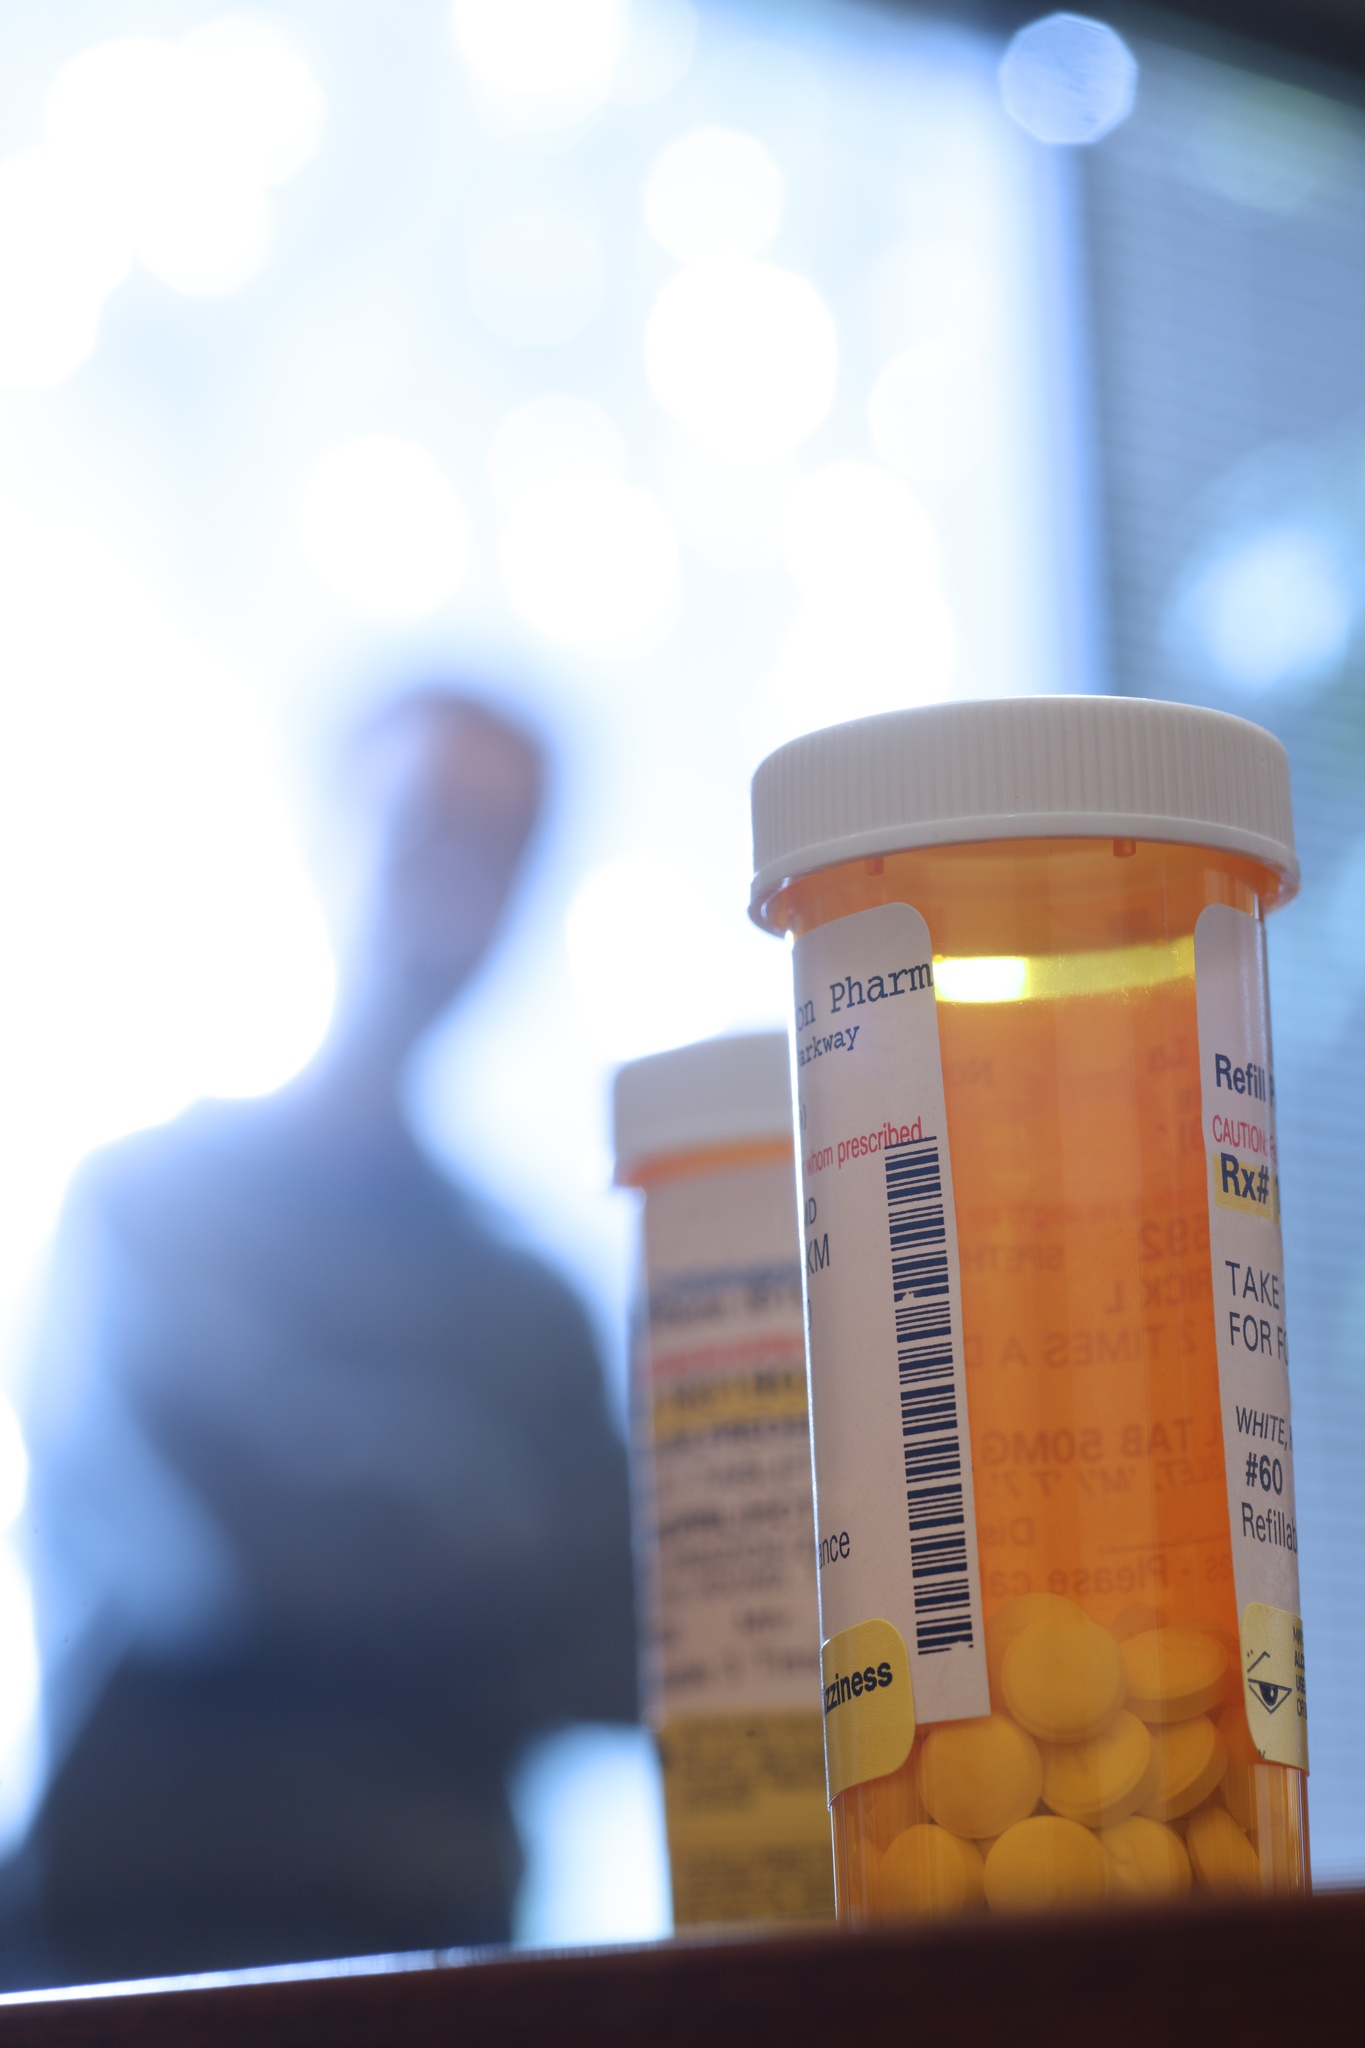 Surescripts joins Epic, CVS to deliver drug pricing info in EHRs